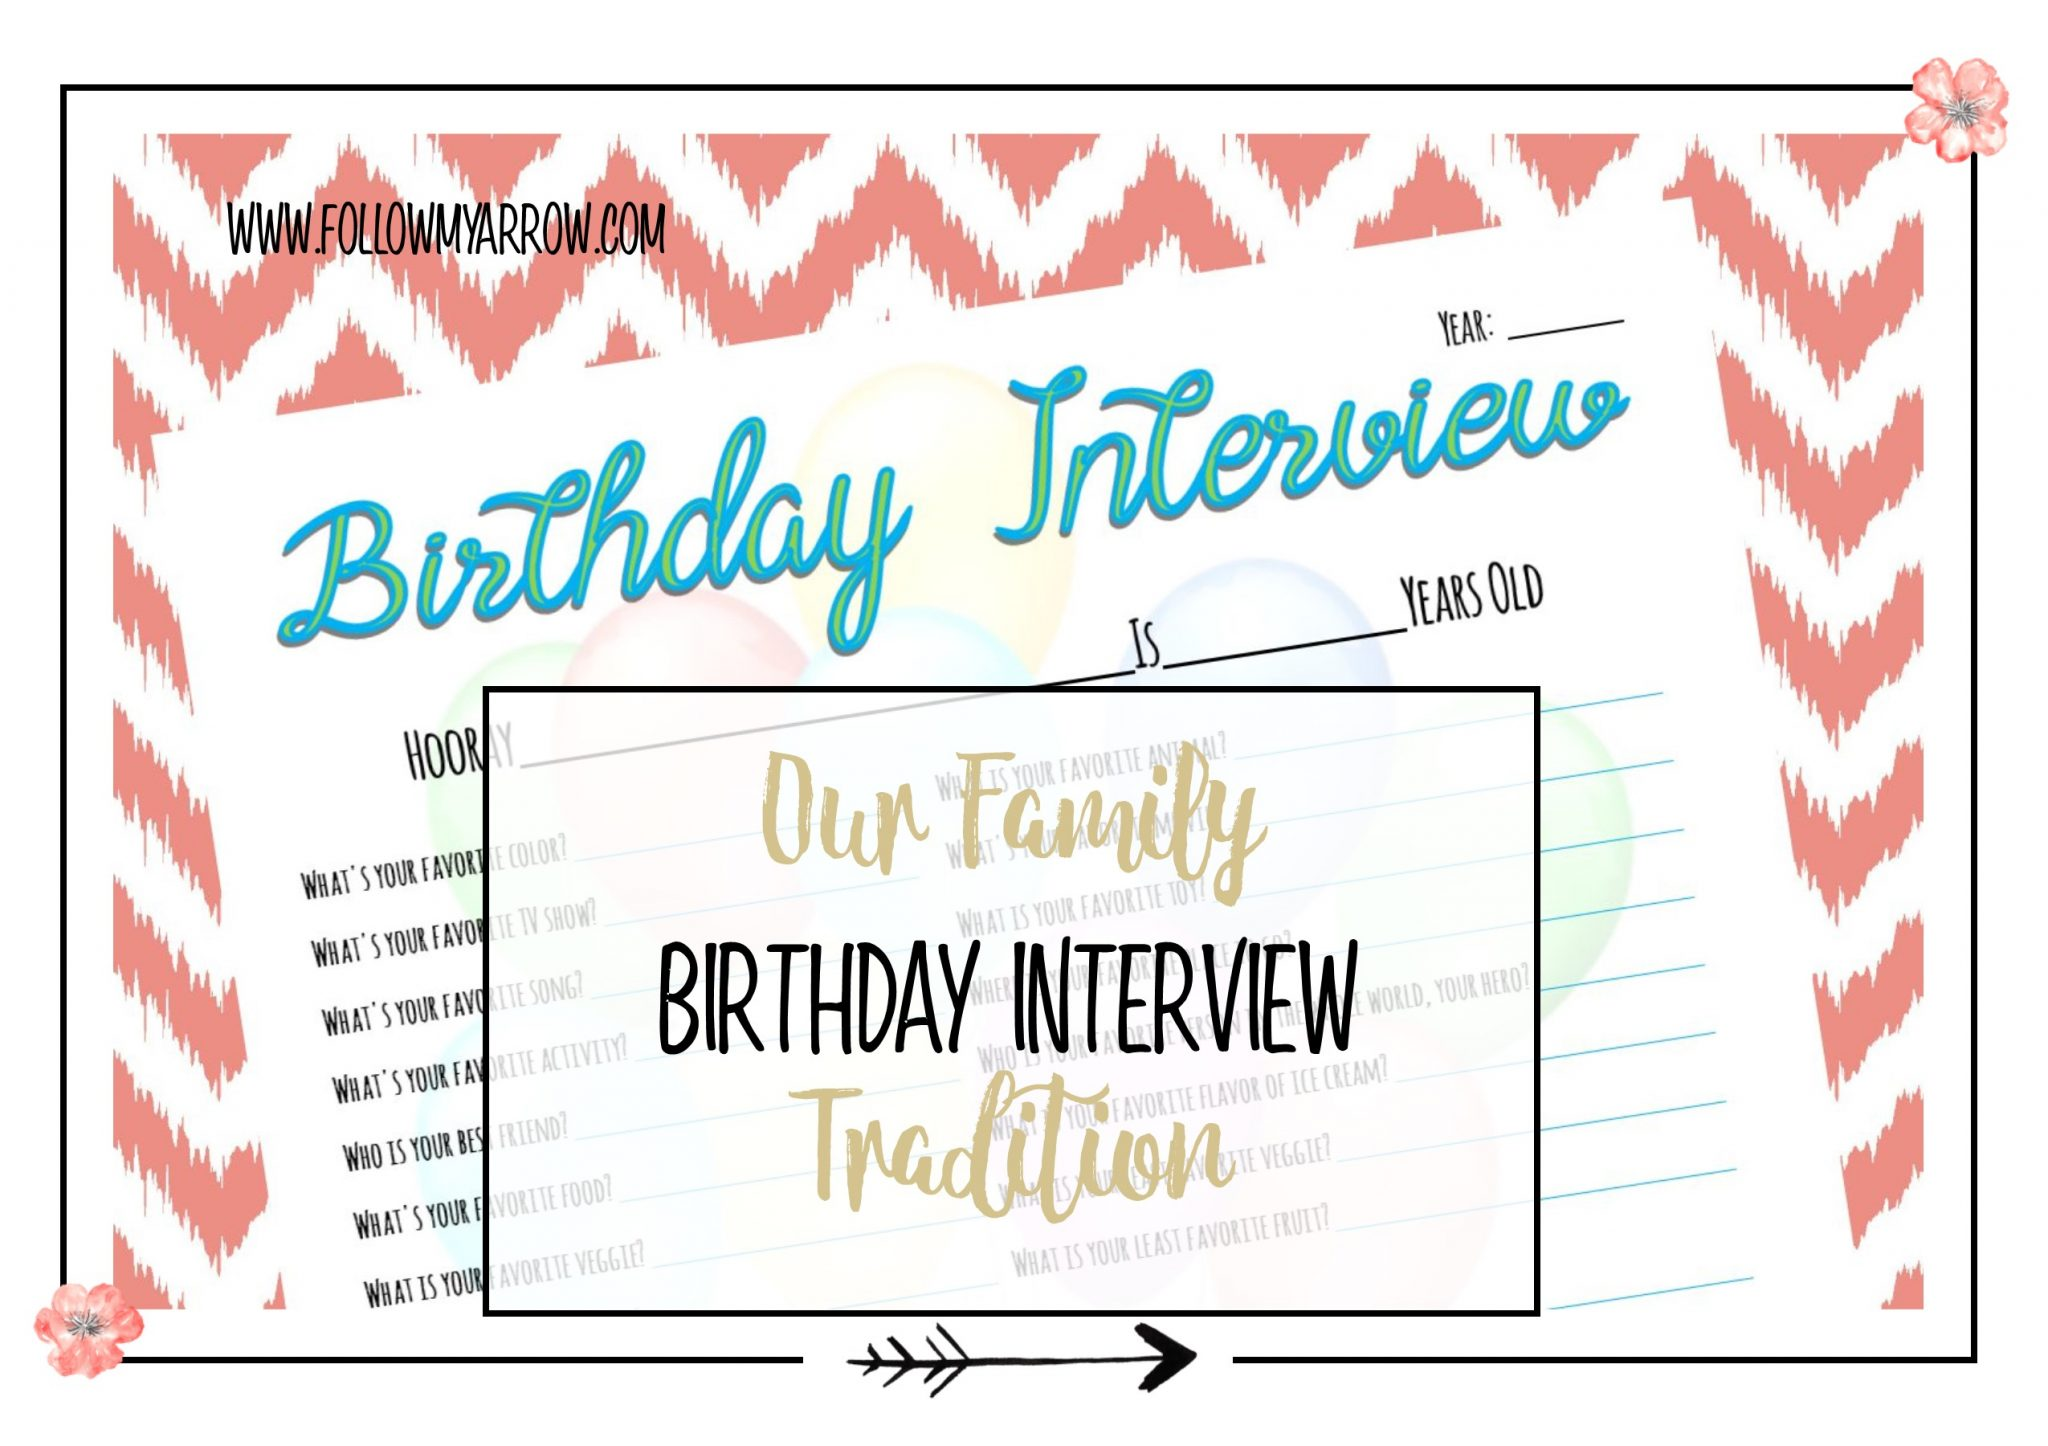 Birthday Interview Tradition to every year with your kids!